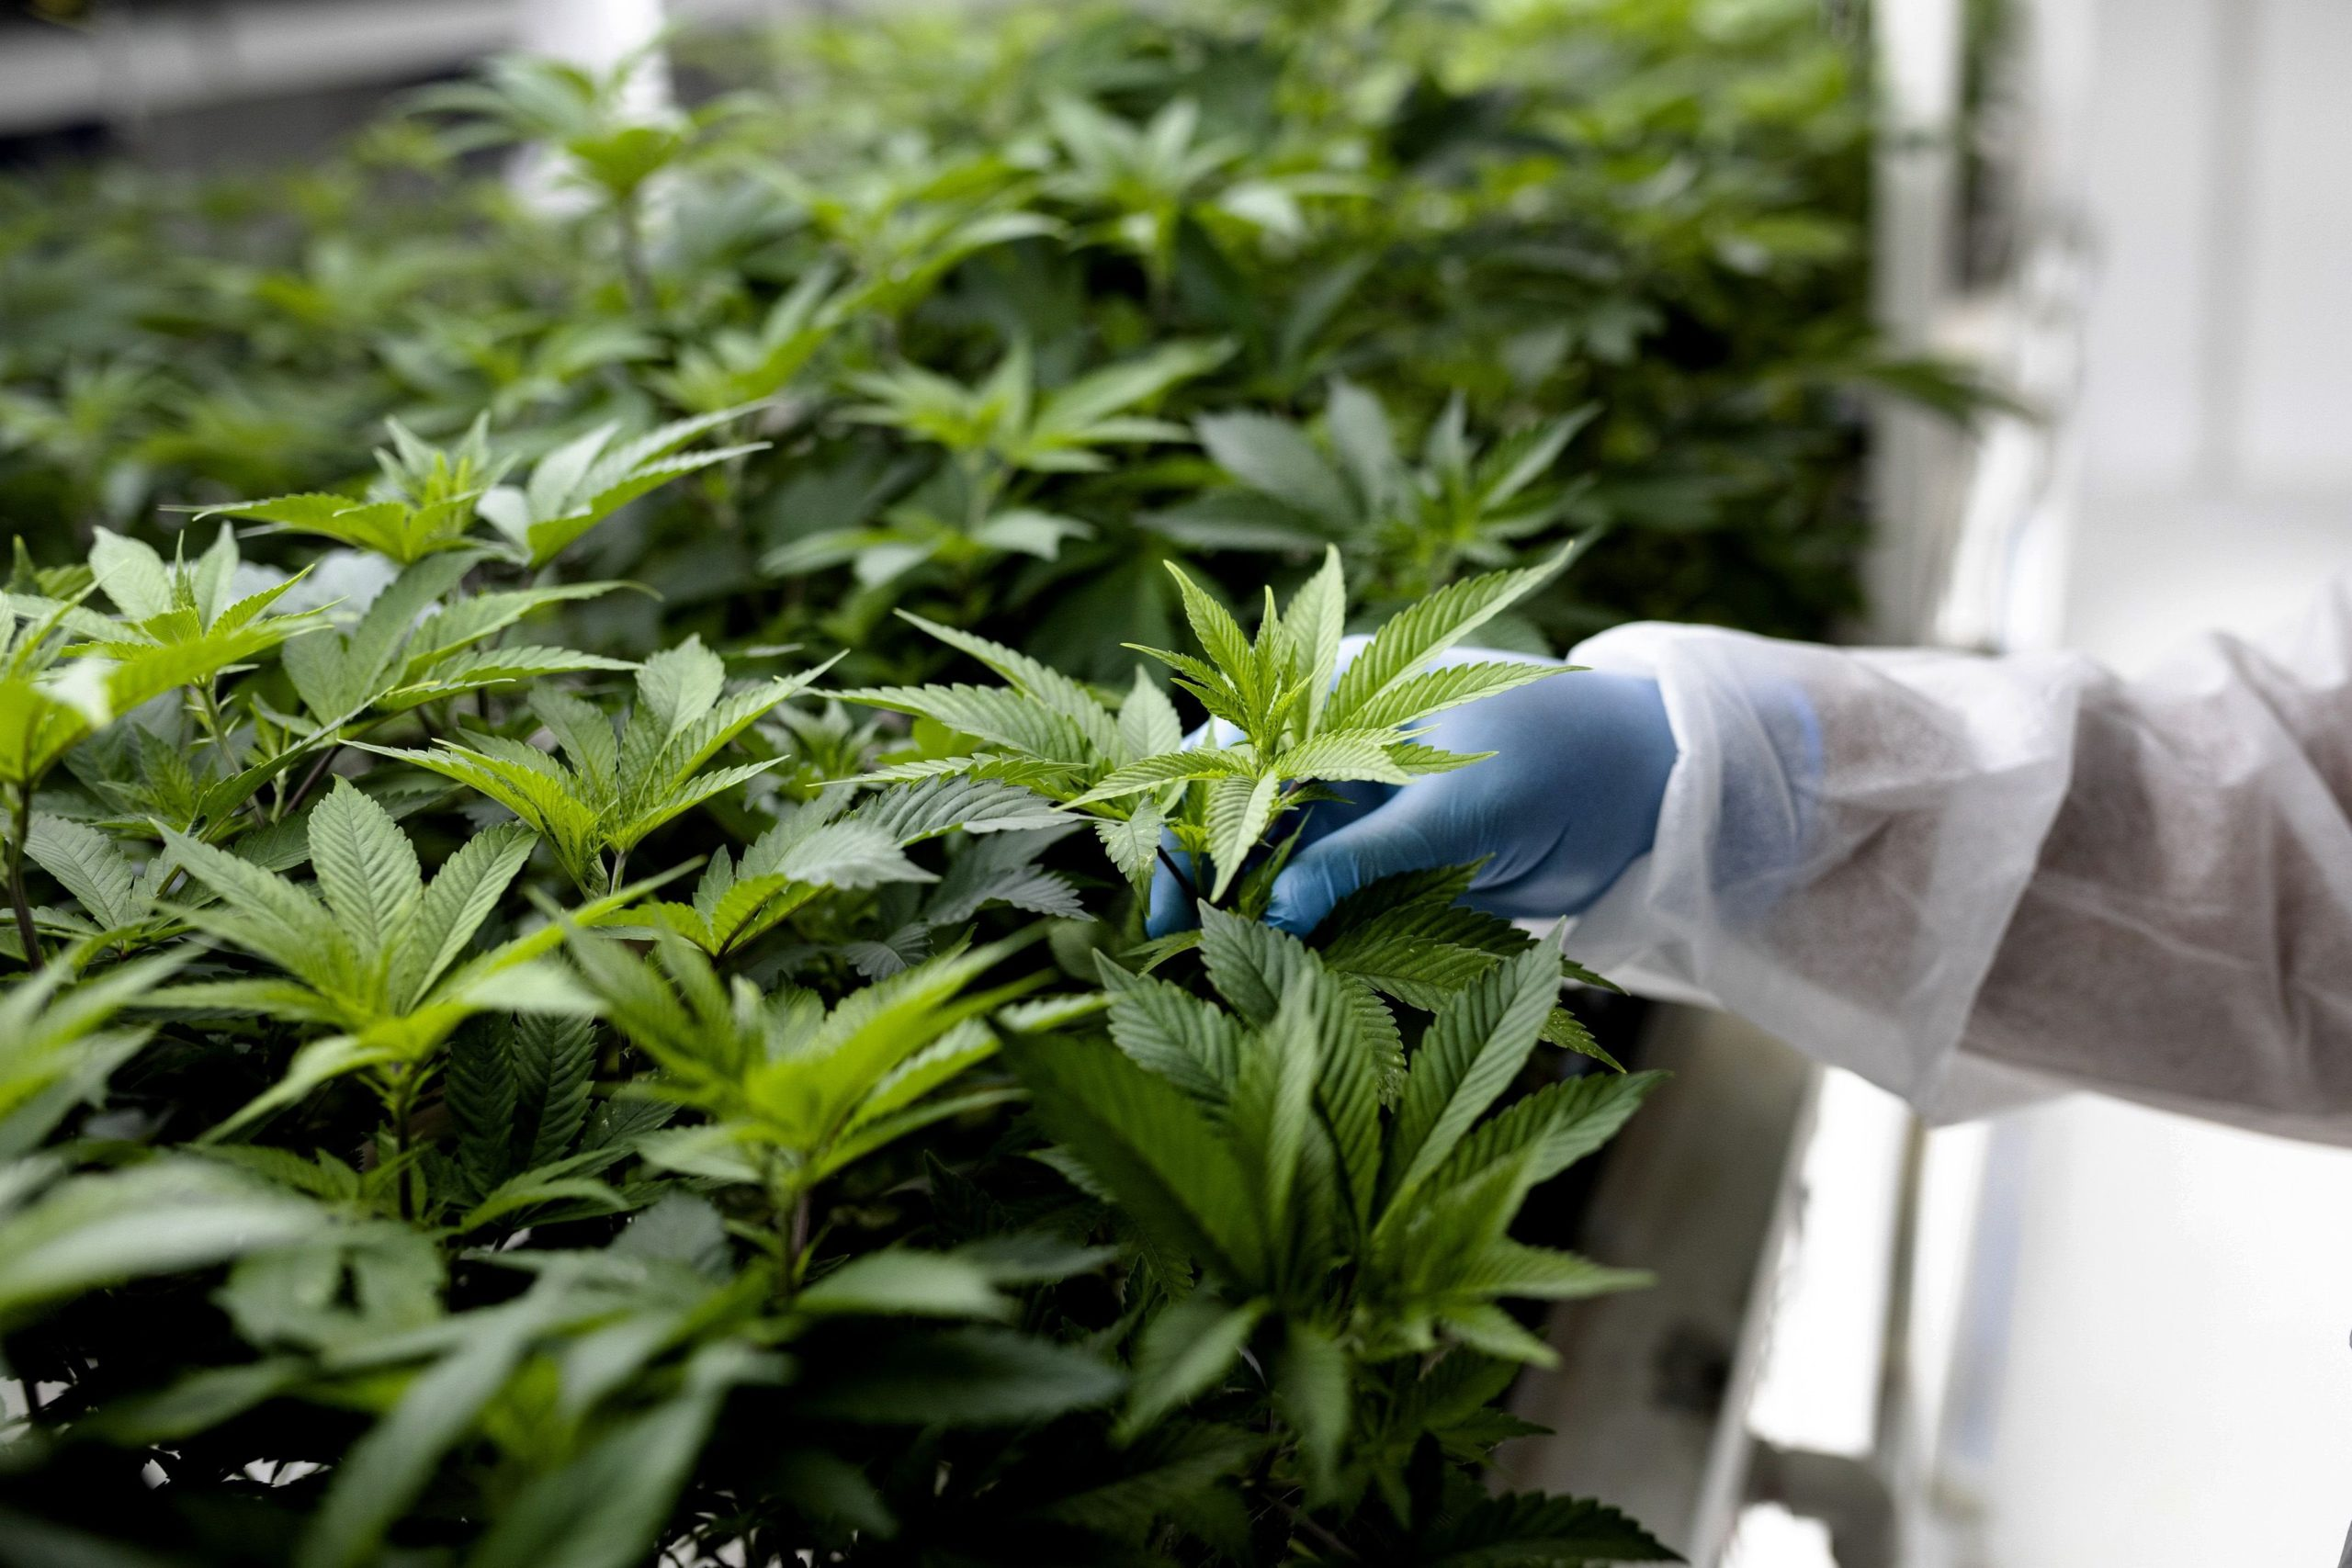 State ballot measures to legalize cannabis could add $9 billion to US marijuana market